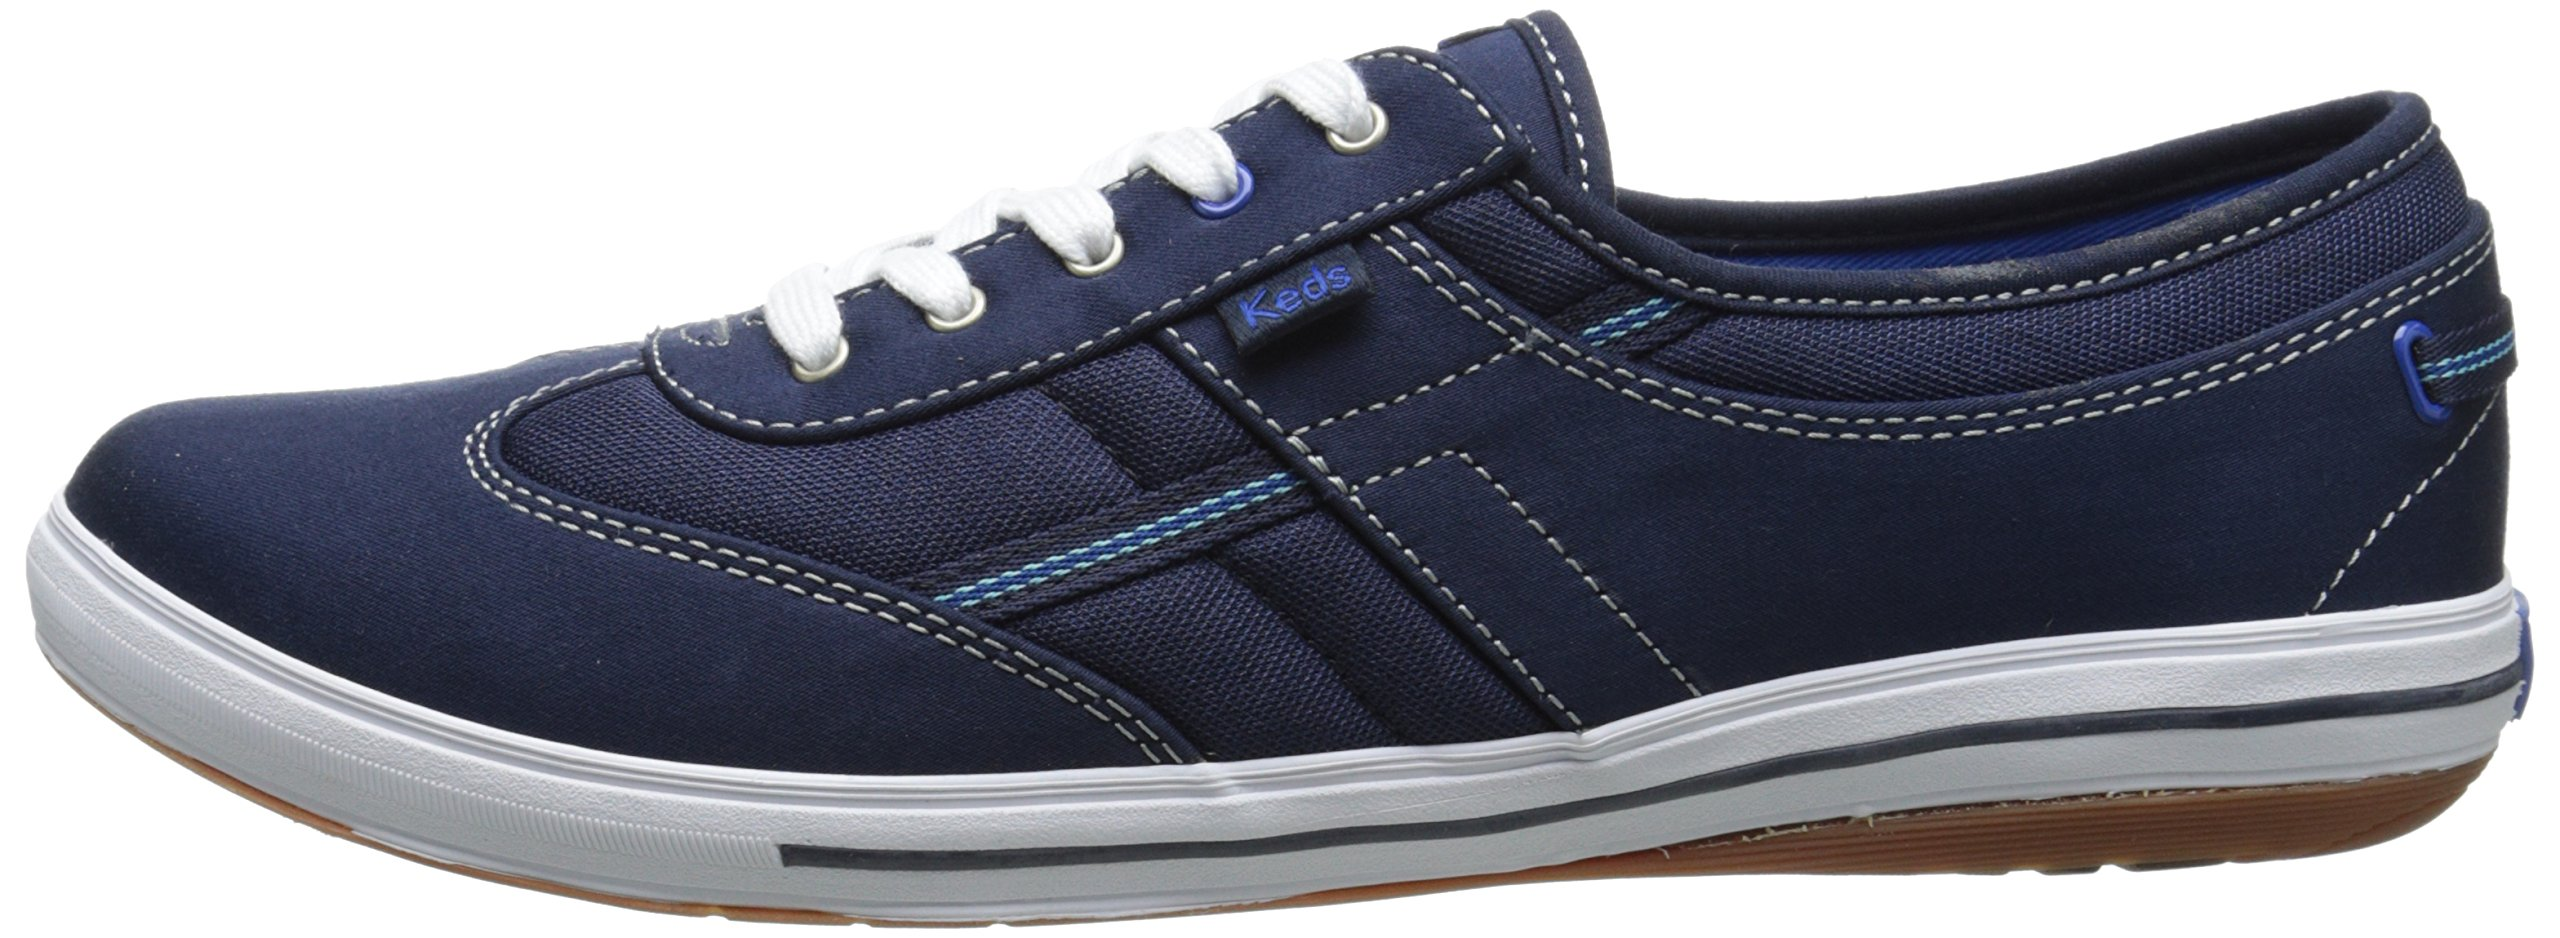 Keds Women's Craze T-Toe Twill Sneaker, Peacoat Navy, 10 M US by Keds (Image #5)